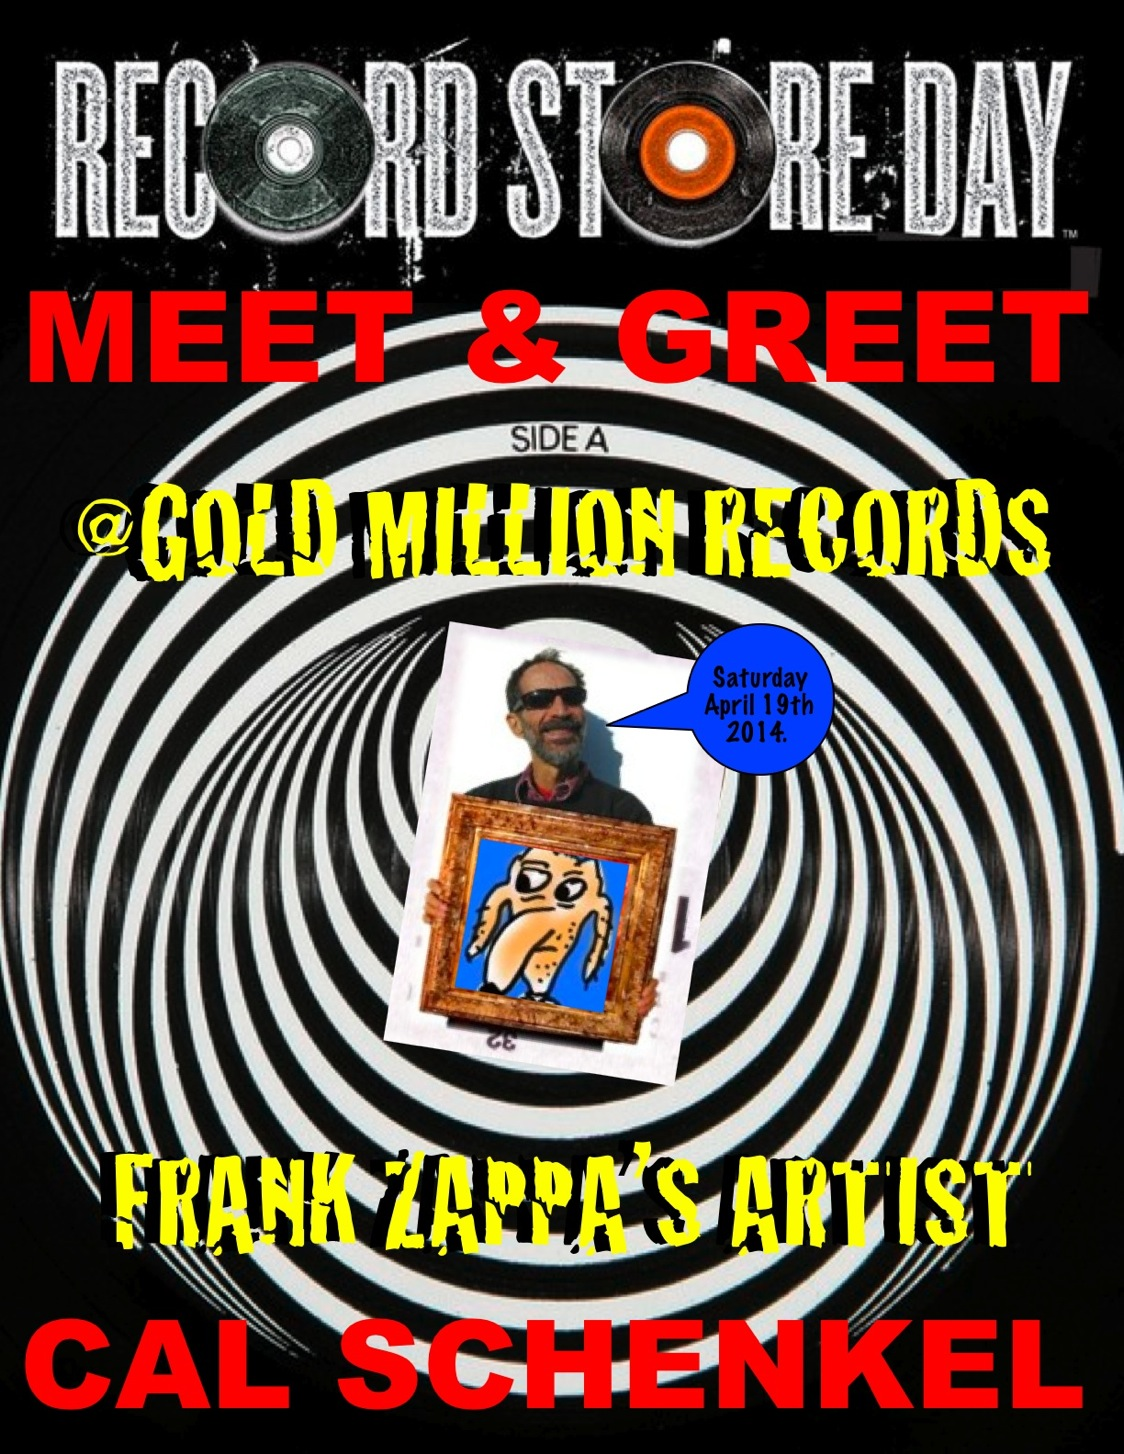 FRANK ZAPPA original and legendary art engineer CAL SCHENKEL returns to GOLD MILLION RECORDS    A much favored Record Store Day tradition since 2011, artist extraordinaire Cal Schenkel will spend April 19, 2014 sharing his art and wisdom at Gold Million Records in Bryn Mawr PA. Best known for his works and association with Frank Zappa, including the record album cover designs for The Grand Wazoo, Burnt Weeny Sandwich, Uncle Meat, One Size Fits All, Band From L.A. Cal also designed the iconic Trout Mask Replica for Captain Beefheart, Small Change and Another Saturday Night for Tom Waits, and lots more.